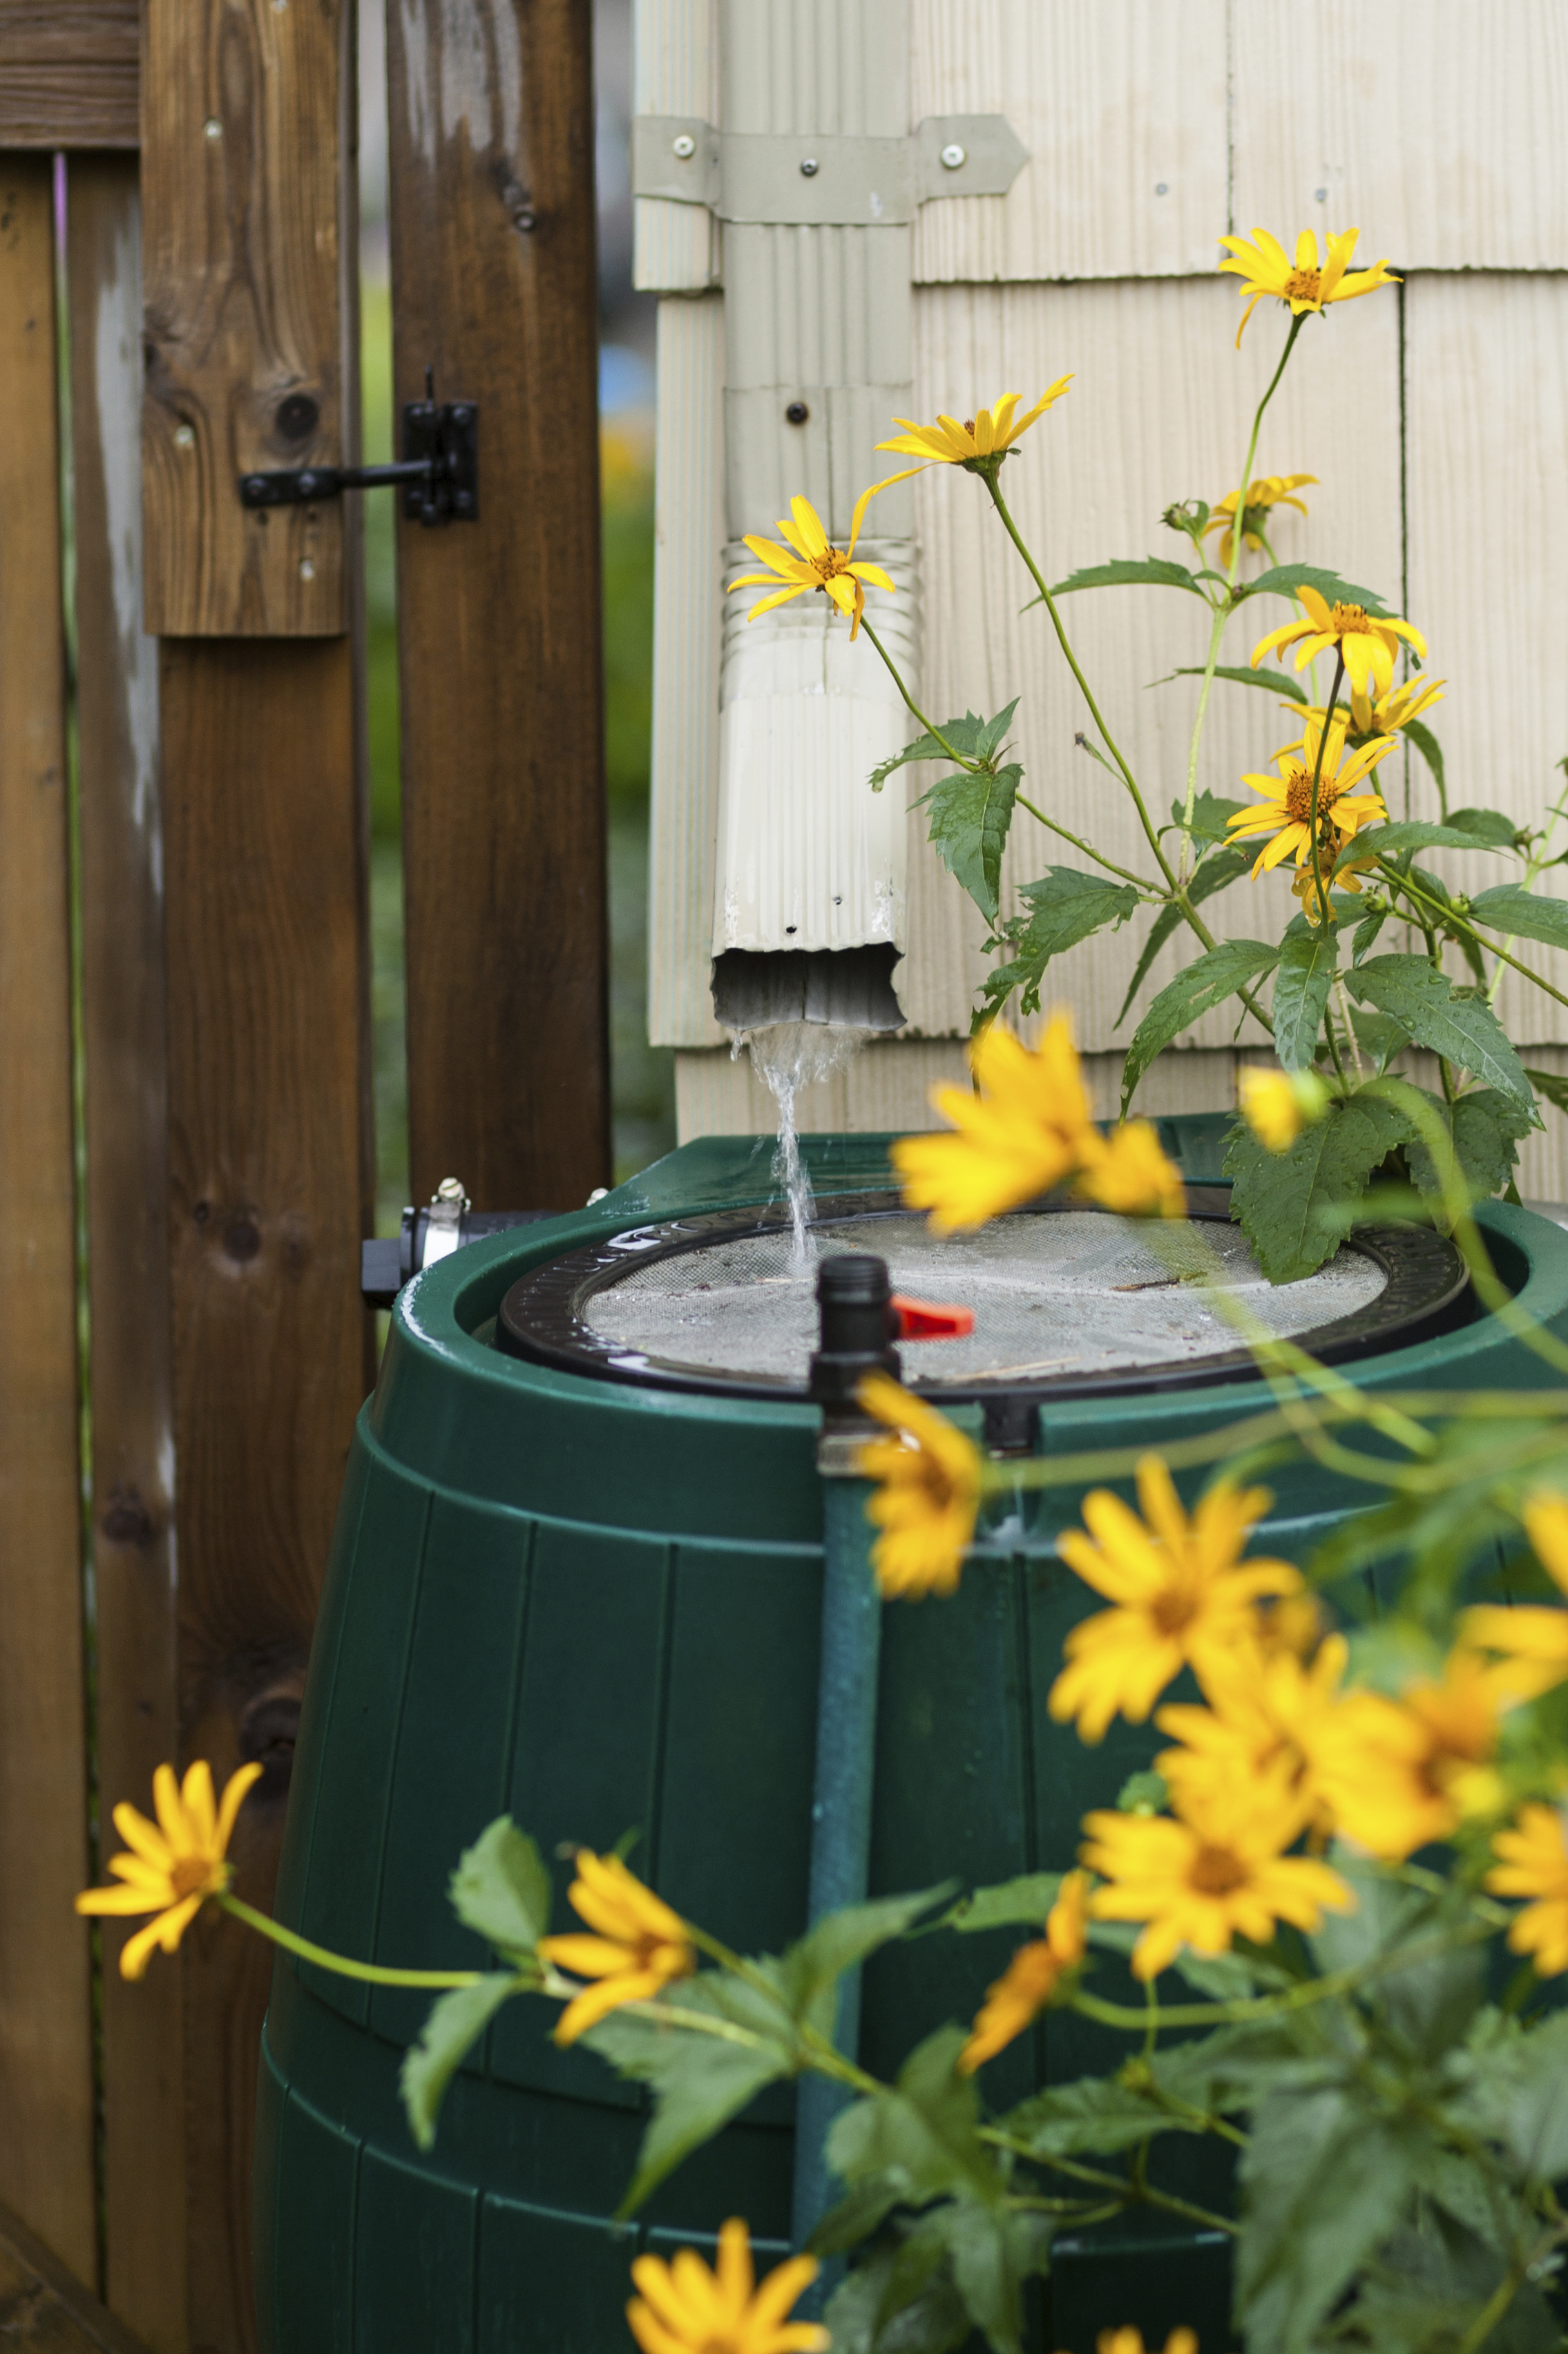 Water catchment systems harmony outdoor living for How to make your own rain barrel system